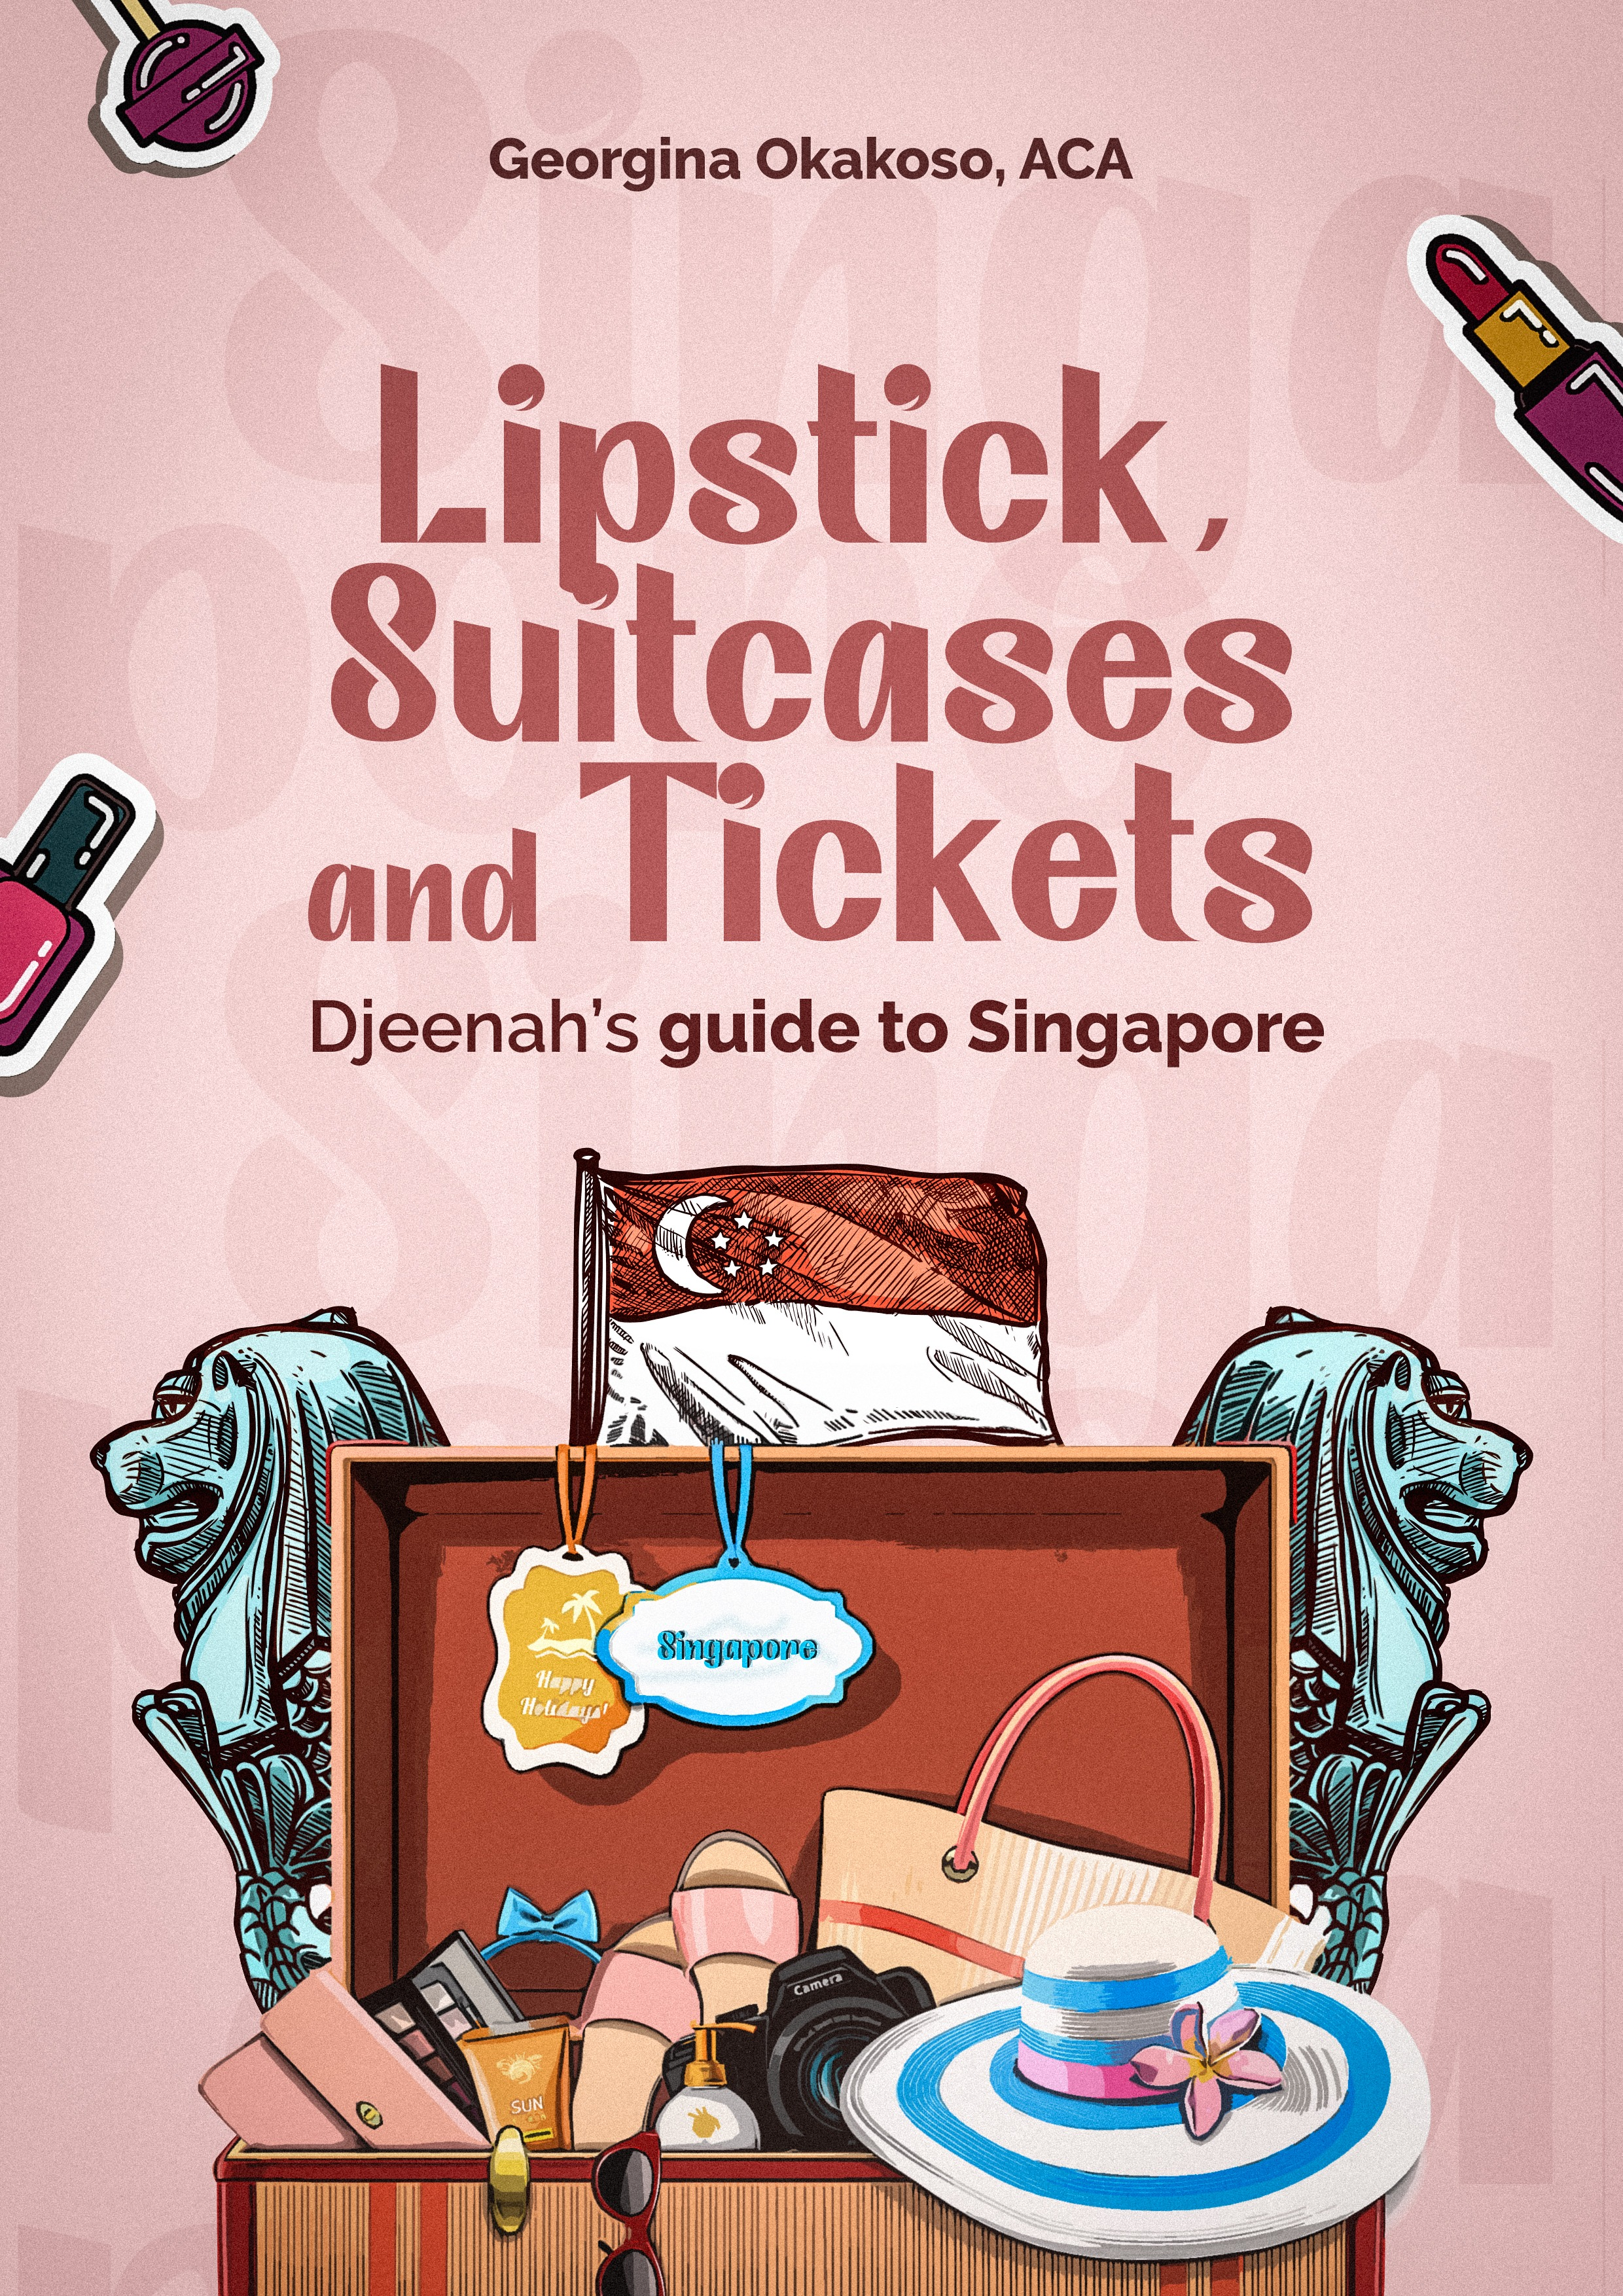 Lipstick, Suitcases and Tickets: Djeenah's guide to Singapore